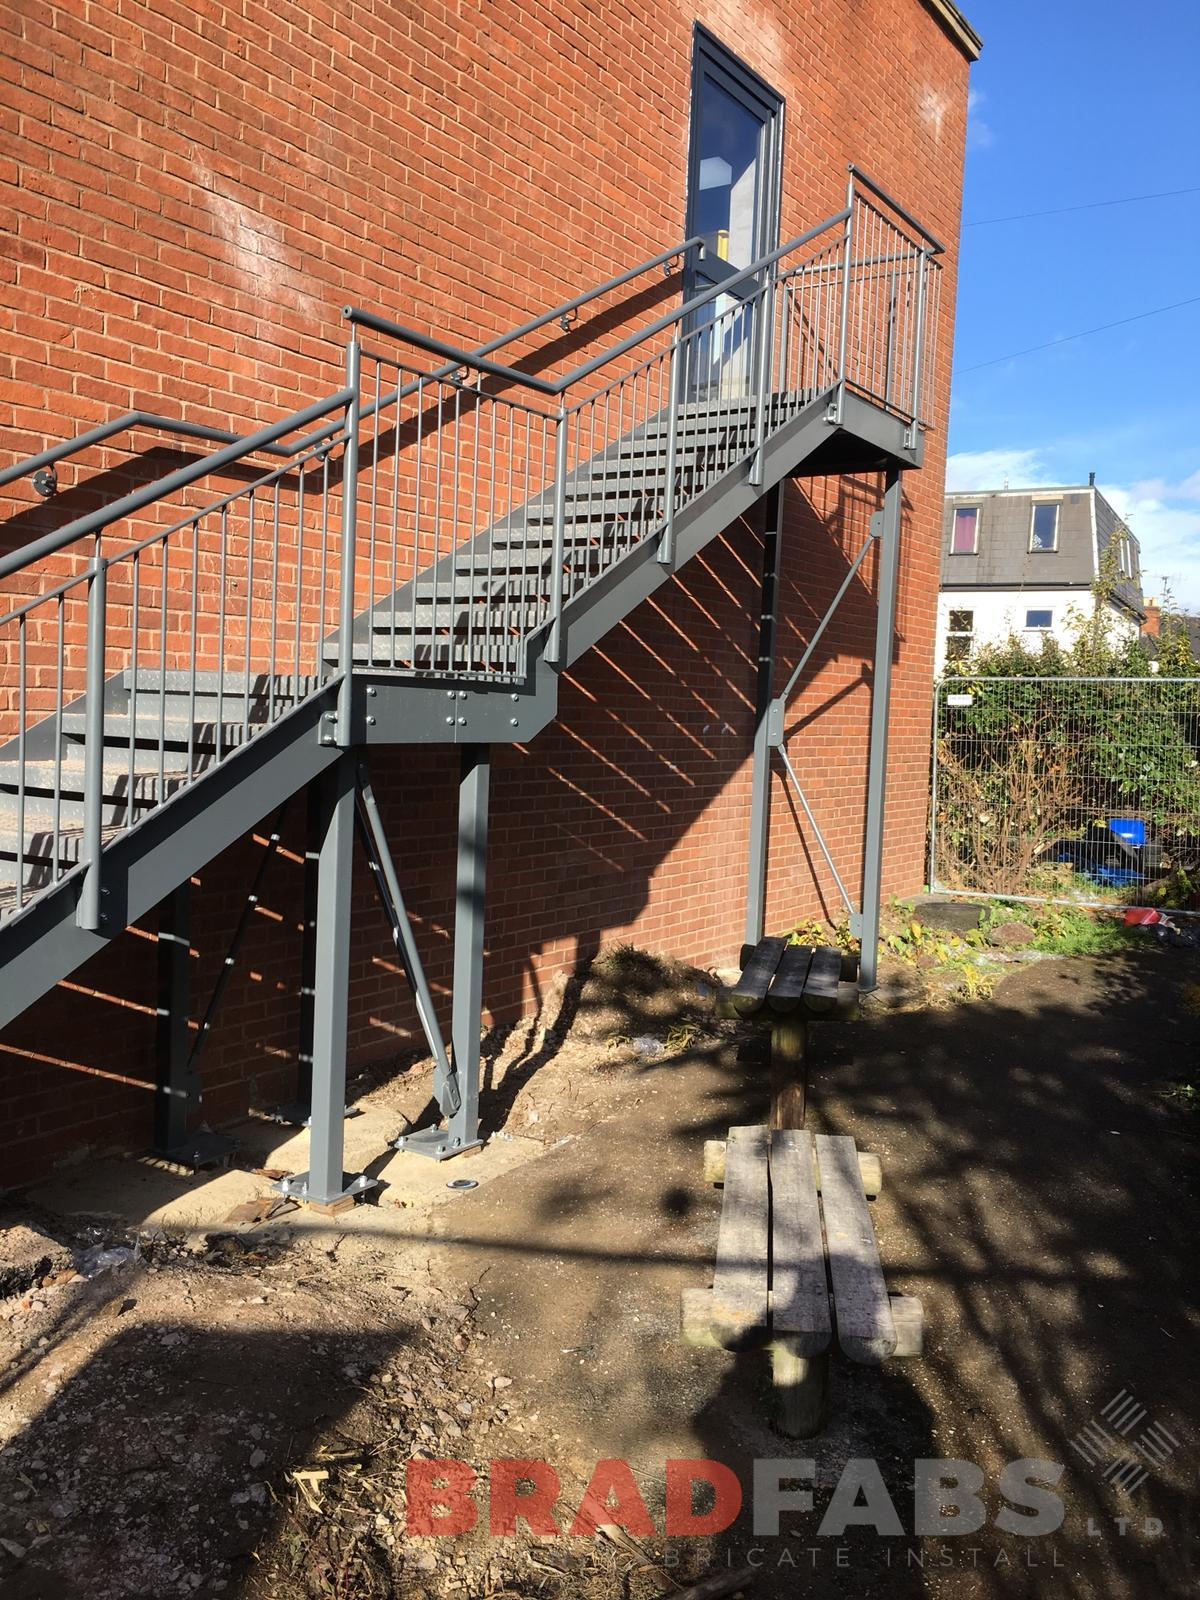 School fire escape installed by Bradfabs